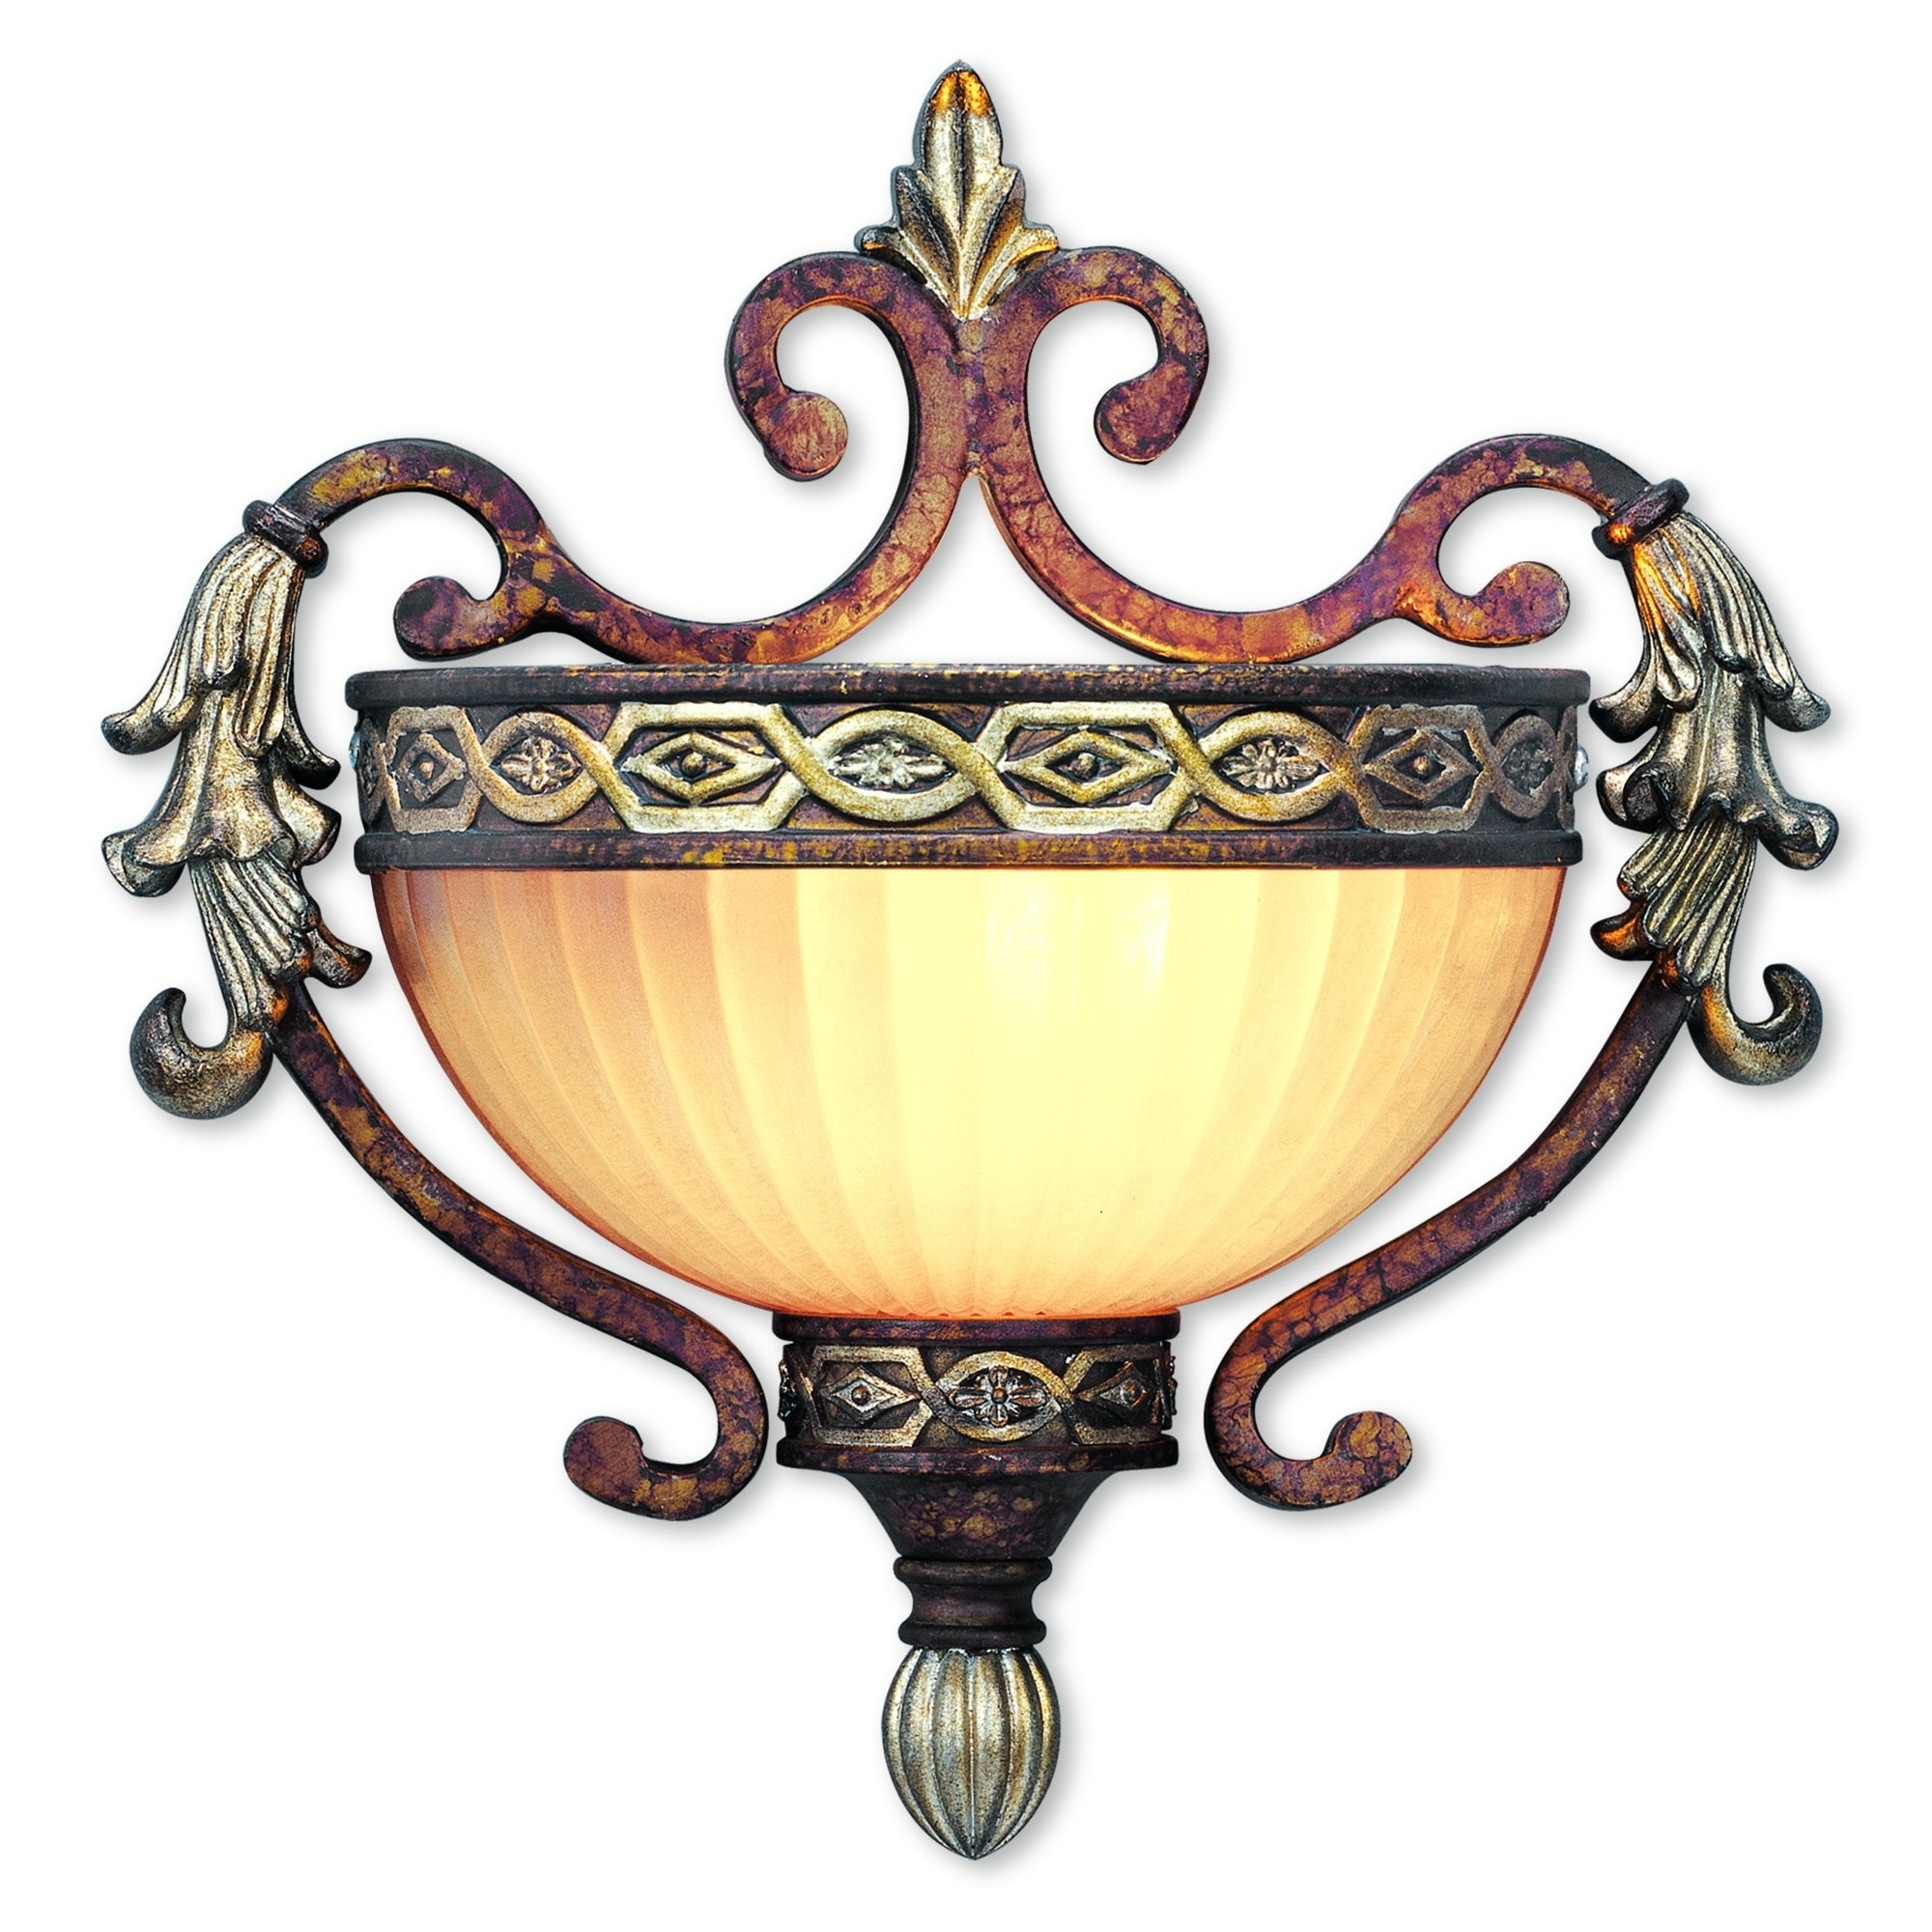 Shop For Livex Lighting Seville 1 Light Palacial Bronze With Gilded Accents Wall Sconce Get Free Delivery On Everything At Overstock Your Online Wall Lighting Store Get 5 In Rewards With Club O 26170069